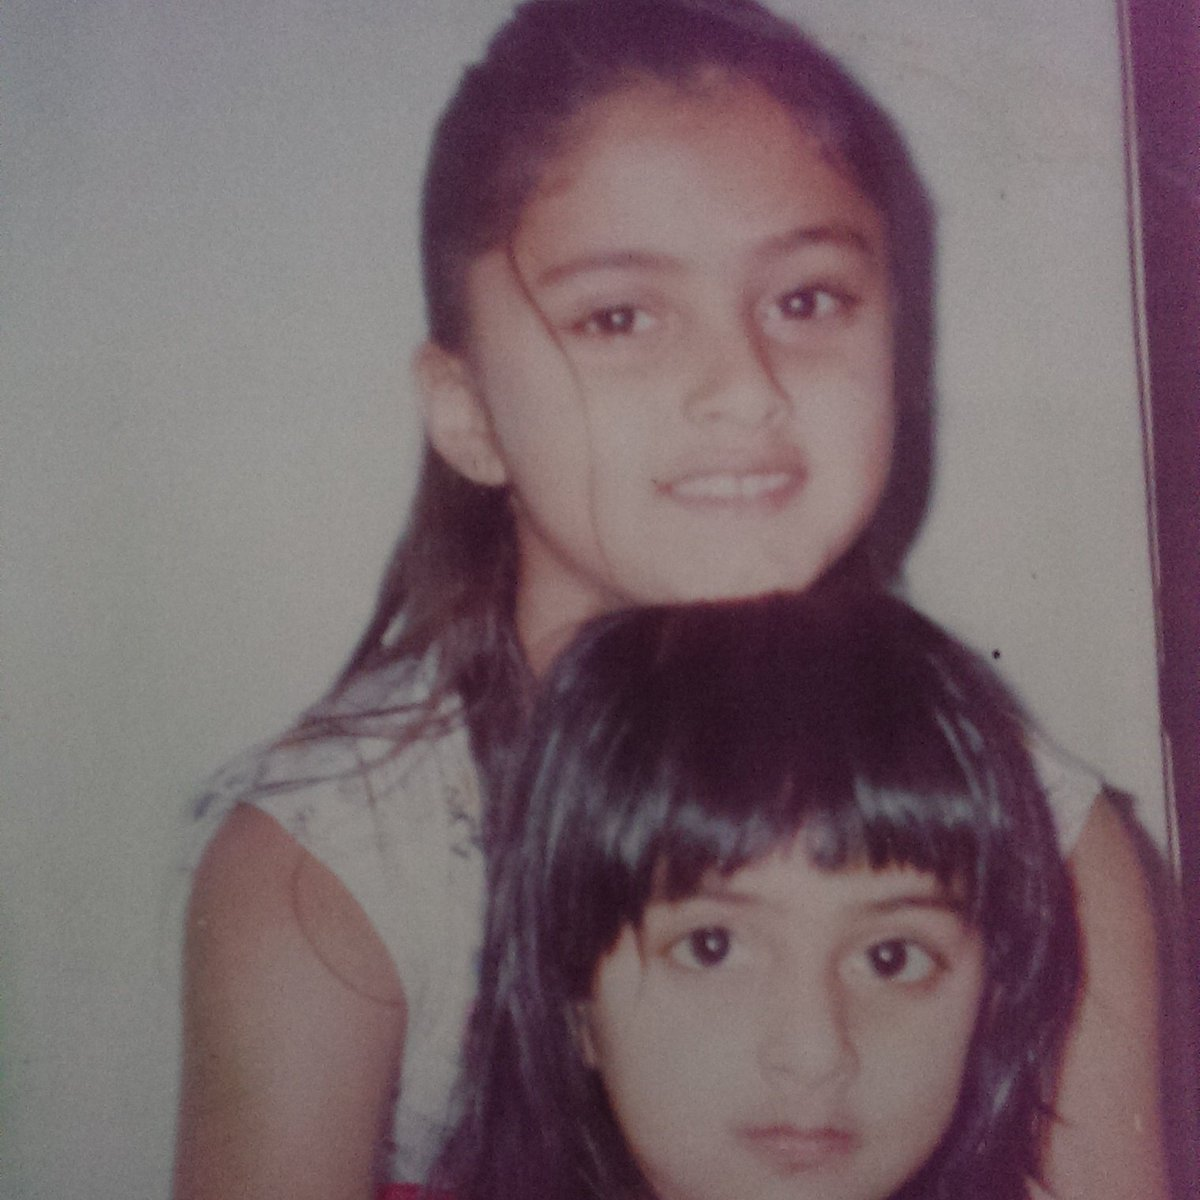 @ajaydevgn #MyGirlMyStrength double Strength for me I'm one of the lucky ones to be walking on this earth